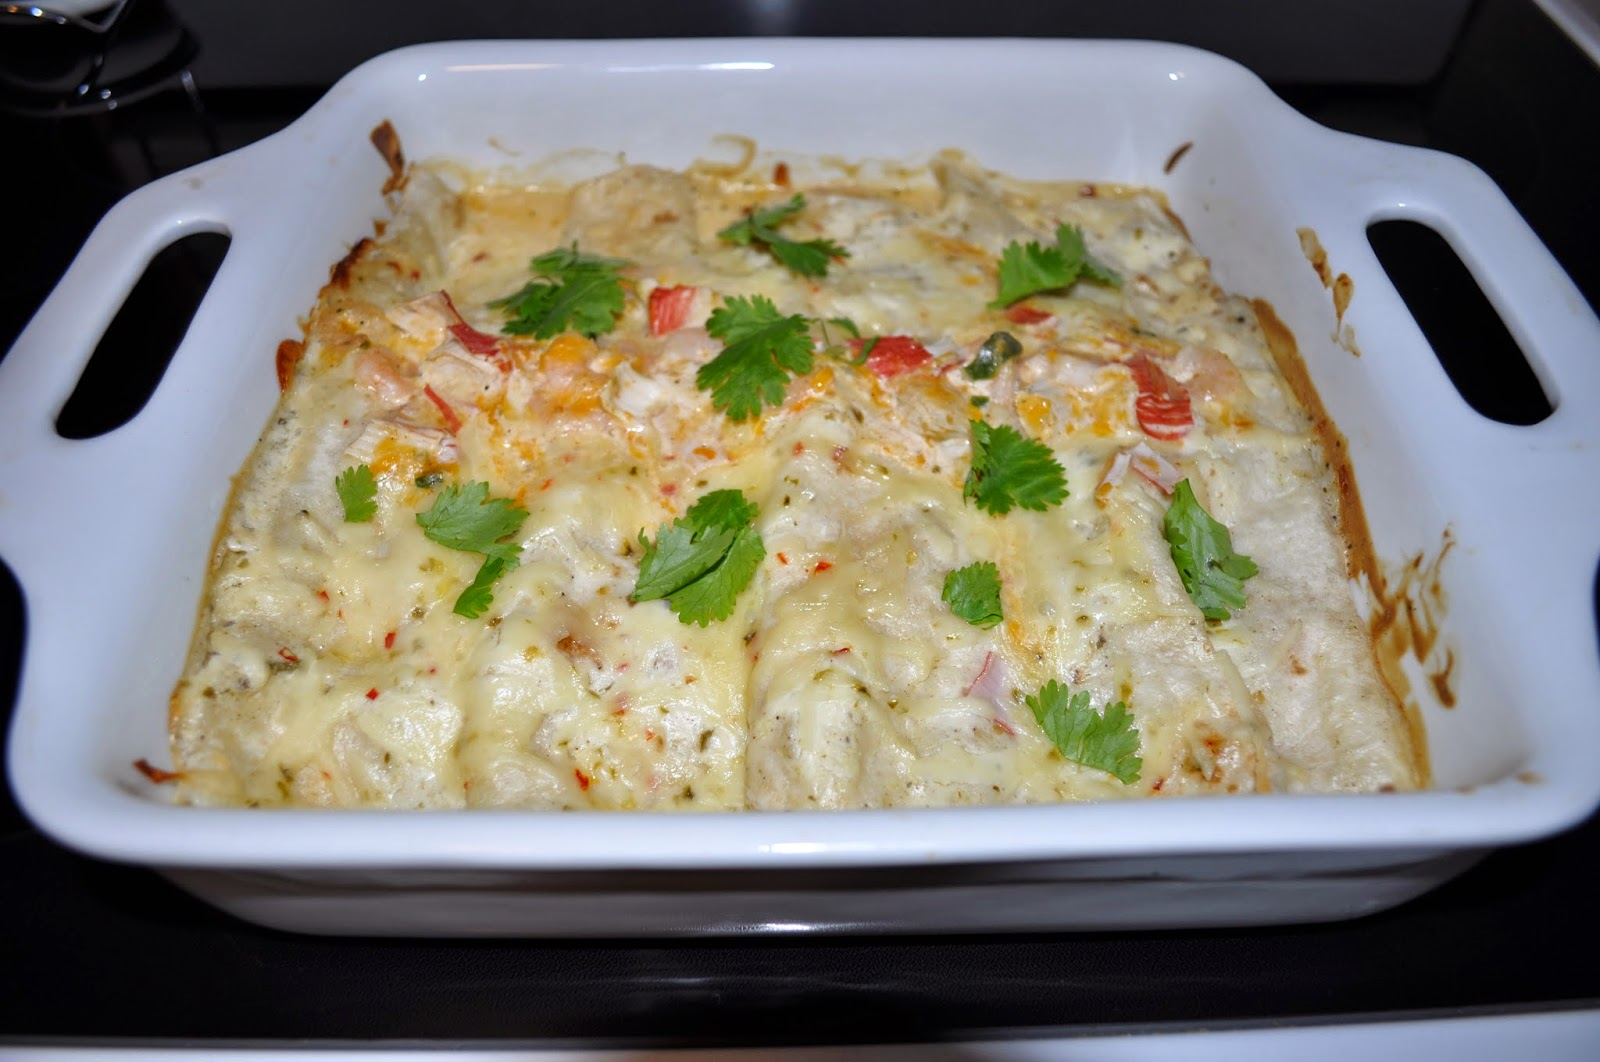 enchiladas, recipes, recipe, seafood enchiladas, lump crab, shrimp, diy, homemade, delicious, tasty, weeknight dish, yum